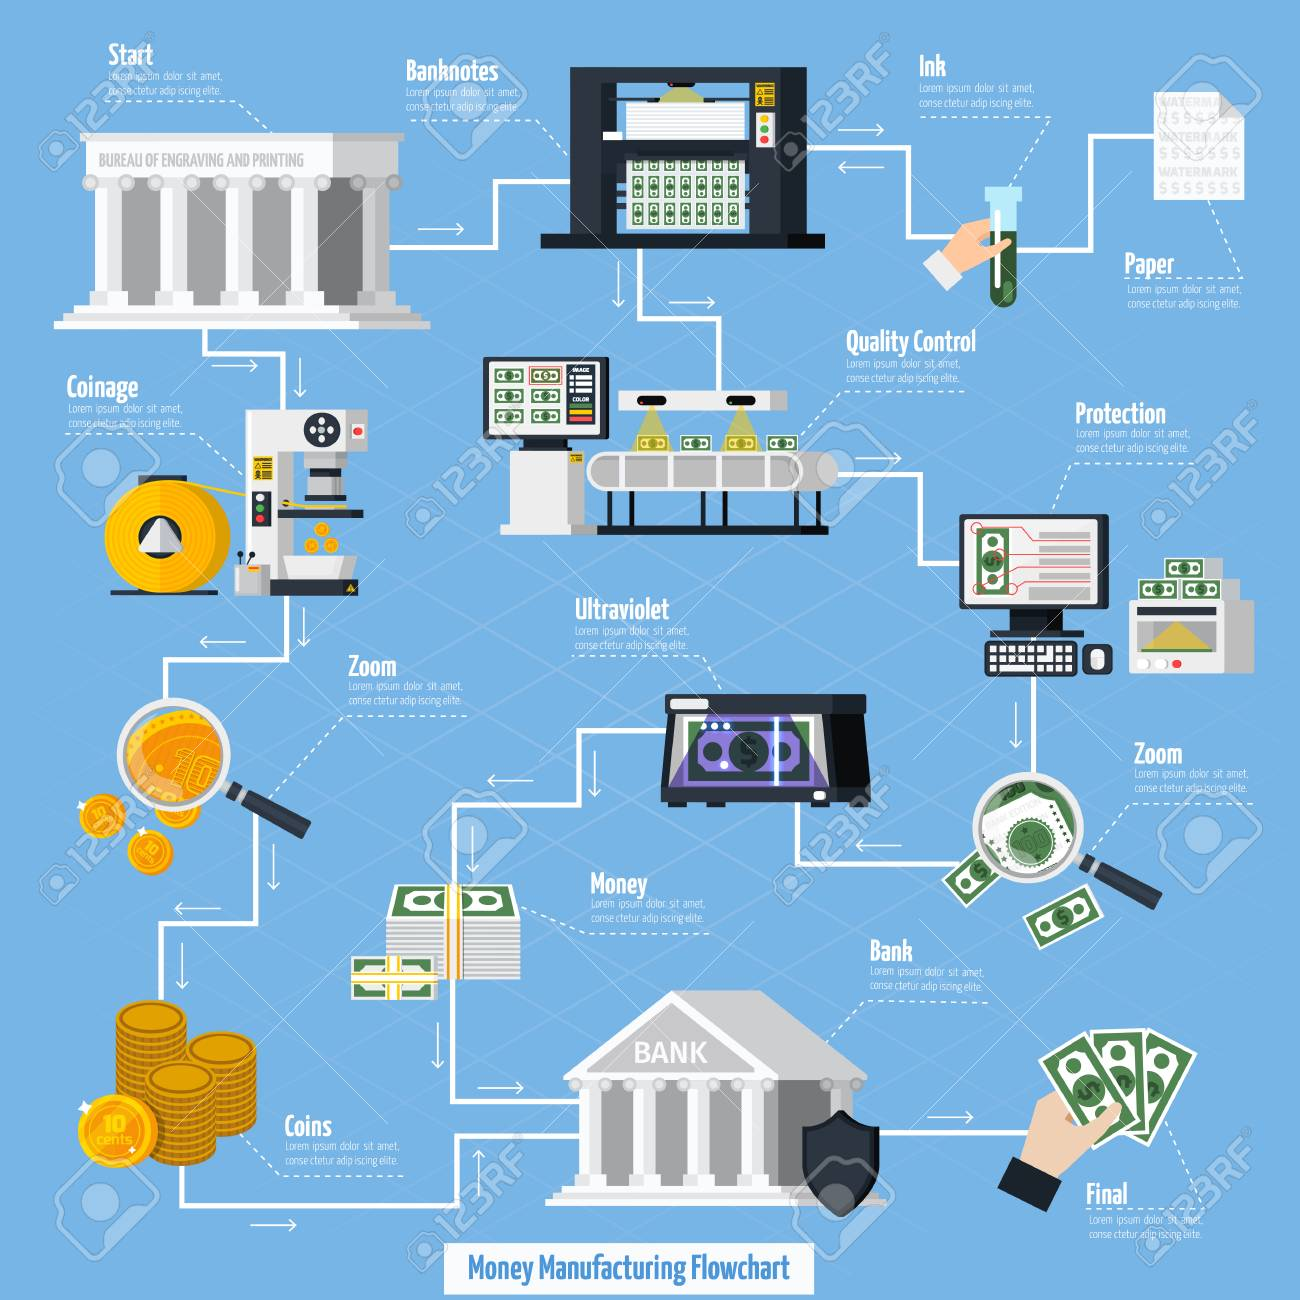 Money Manufacturing Flowchart With Coins And Banknotes Symbols